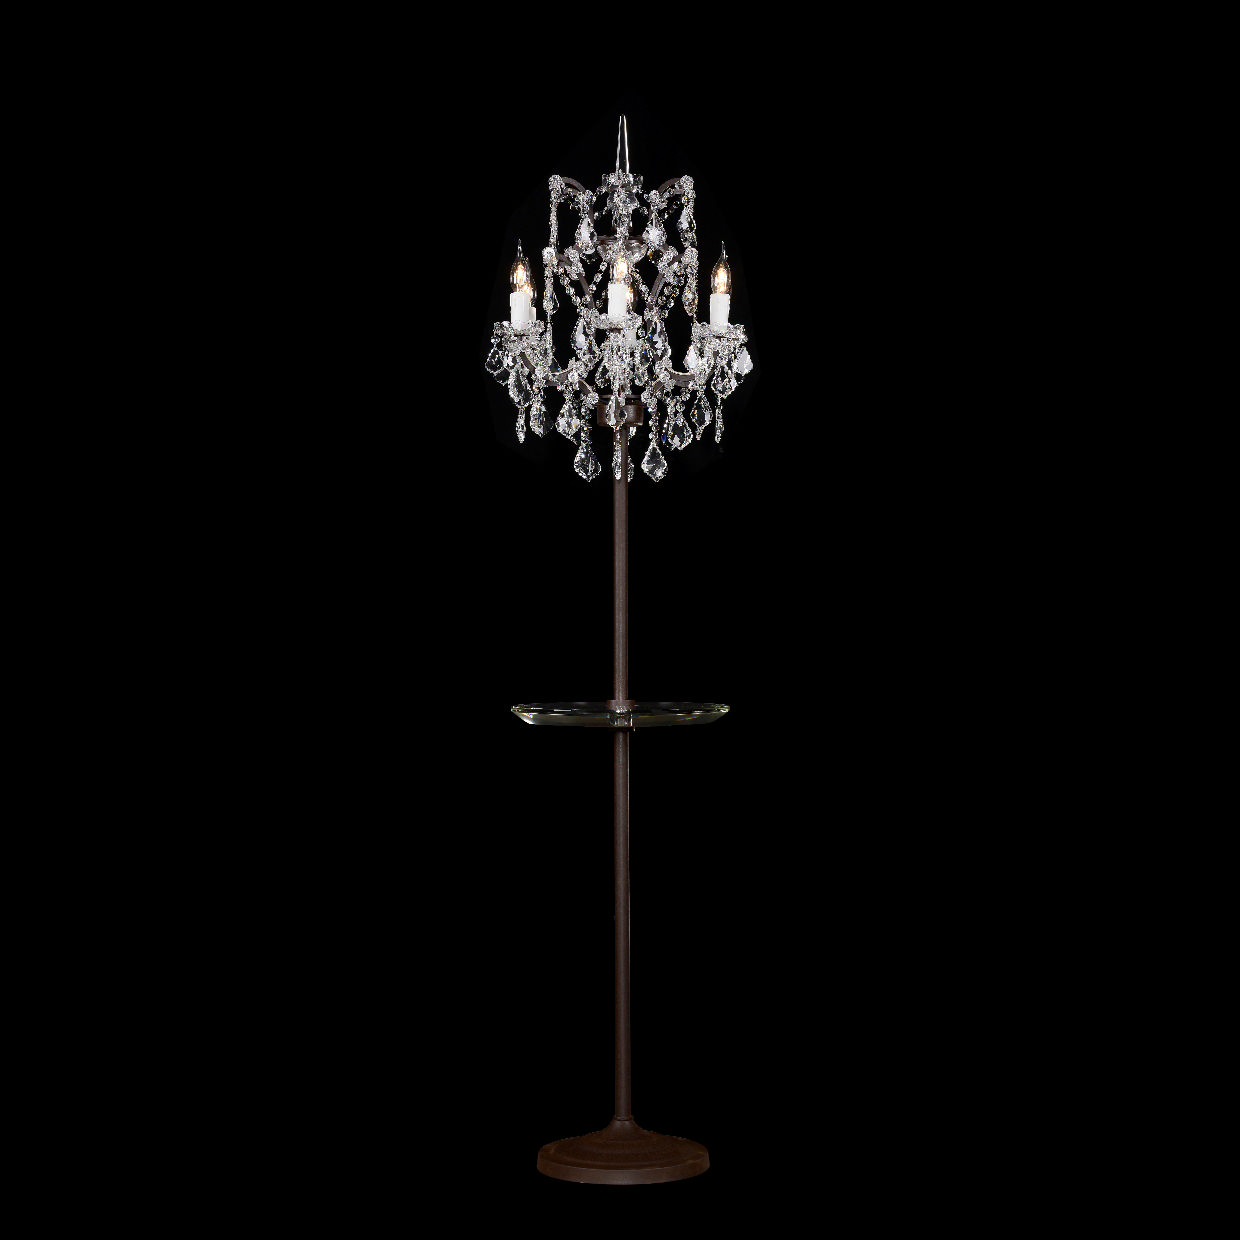 Timothy Oulton Crystal Floor Lamp with Tray